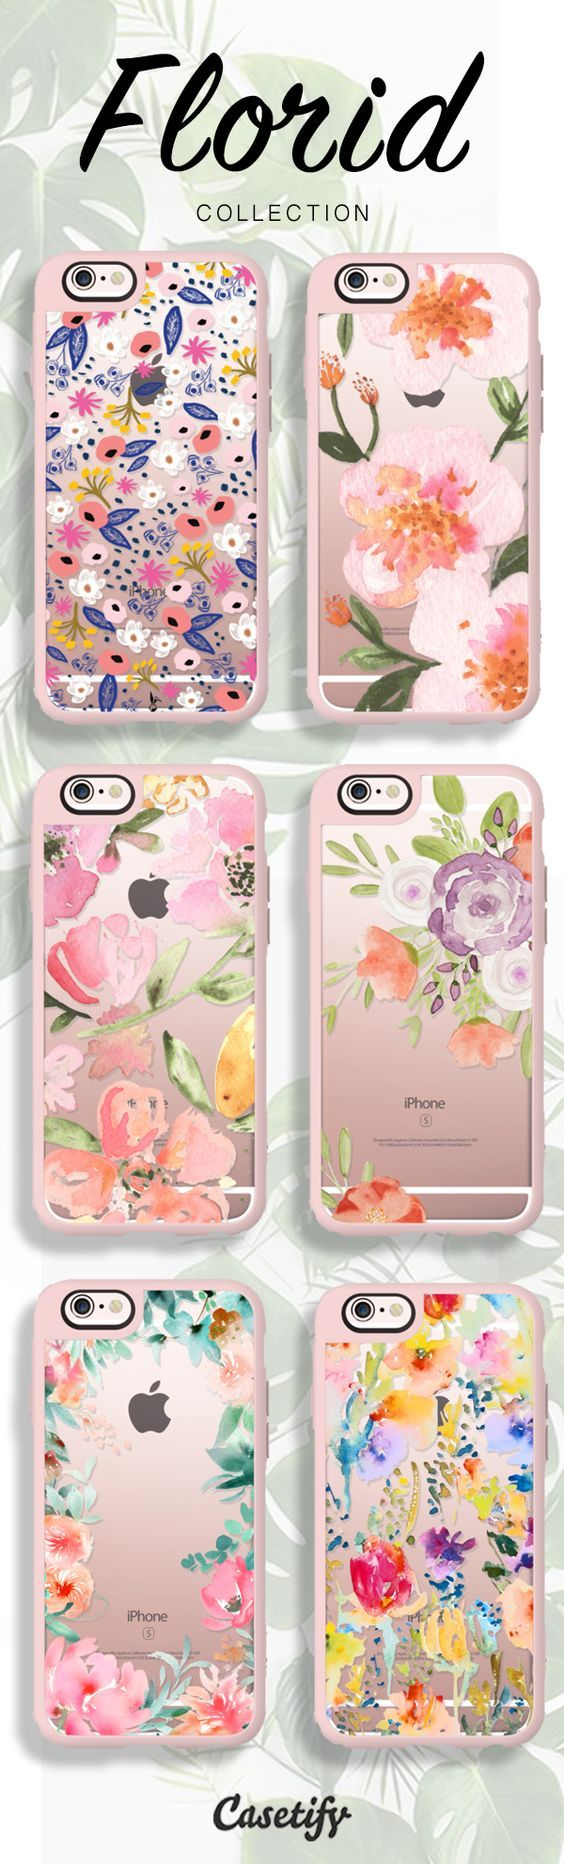 New Years resolution: surround yourself with nothing short of beautiful. Click the link to shop these #phonecases (starting from $29.95): https://www.casetify.com/artworks/inlahlNK0E: